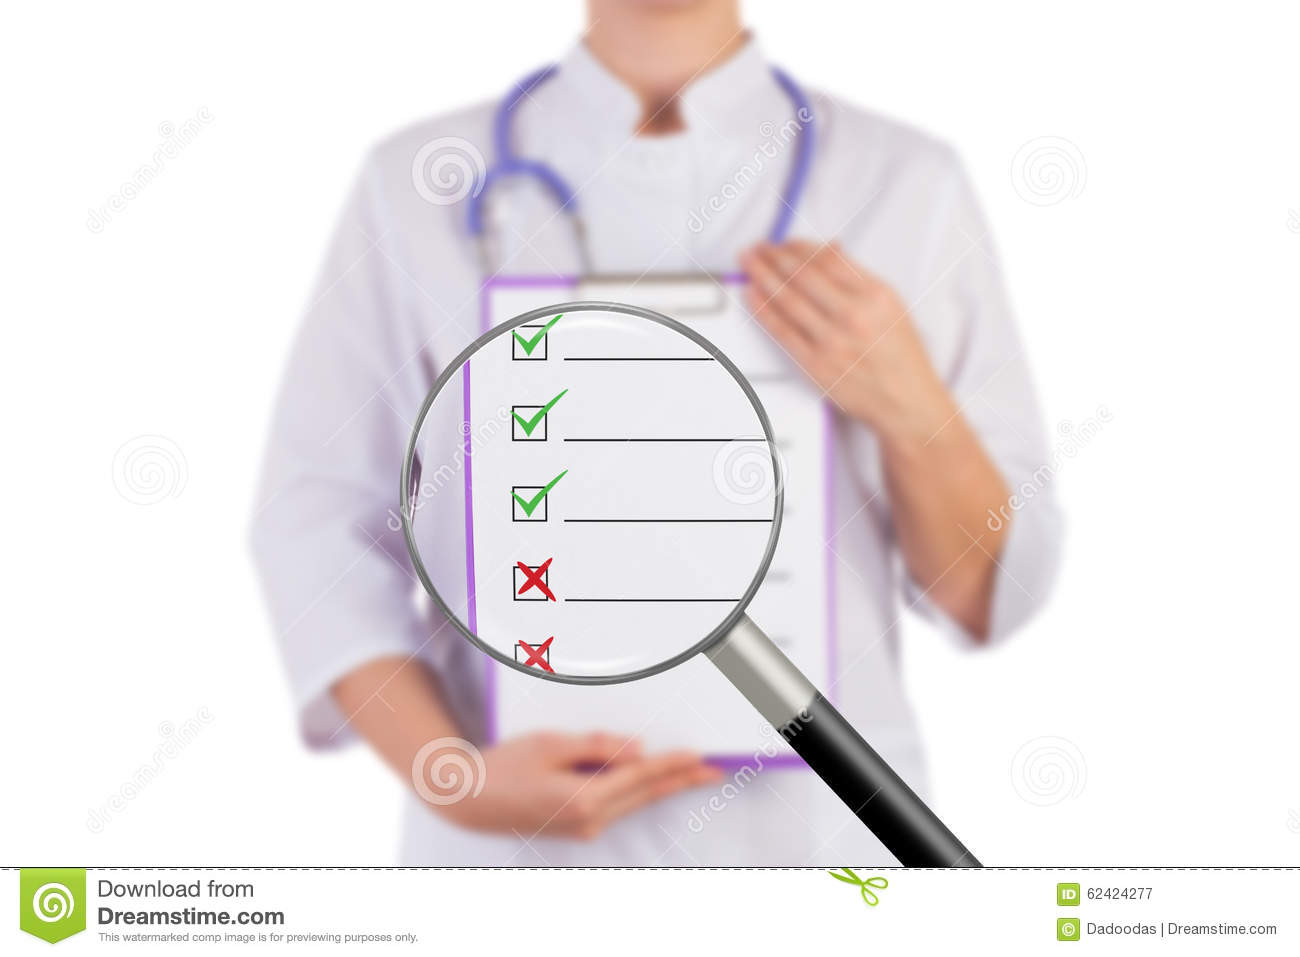 The Doctor Shows A Sheet Of Paper For Recording, Cross And Check